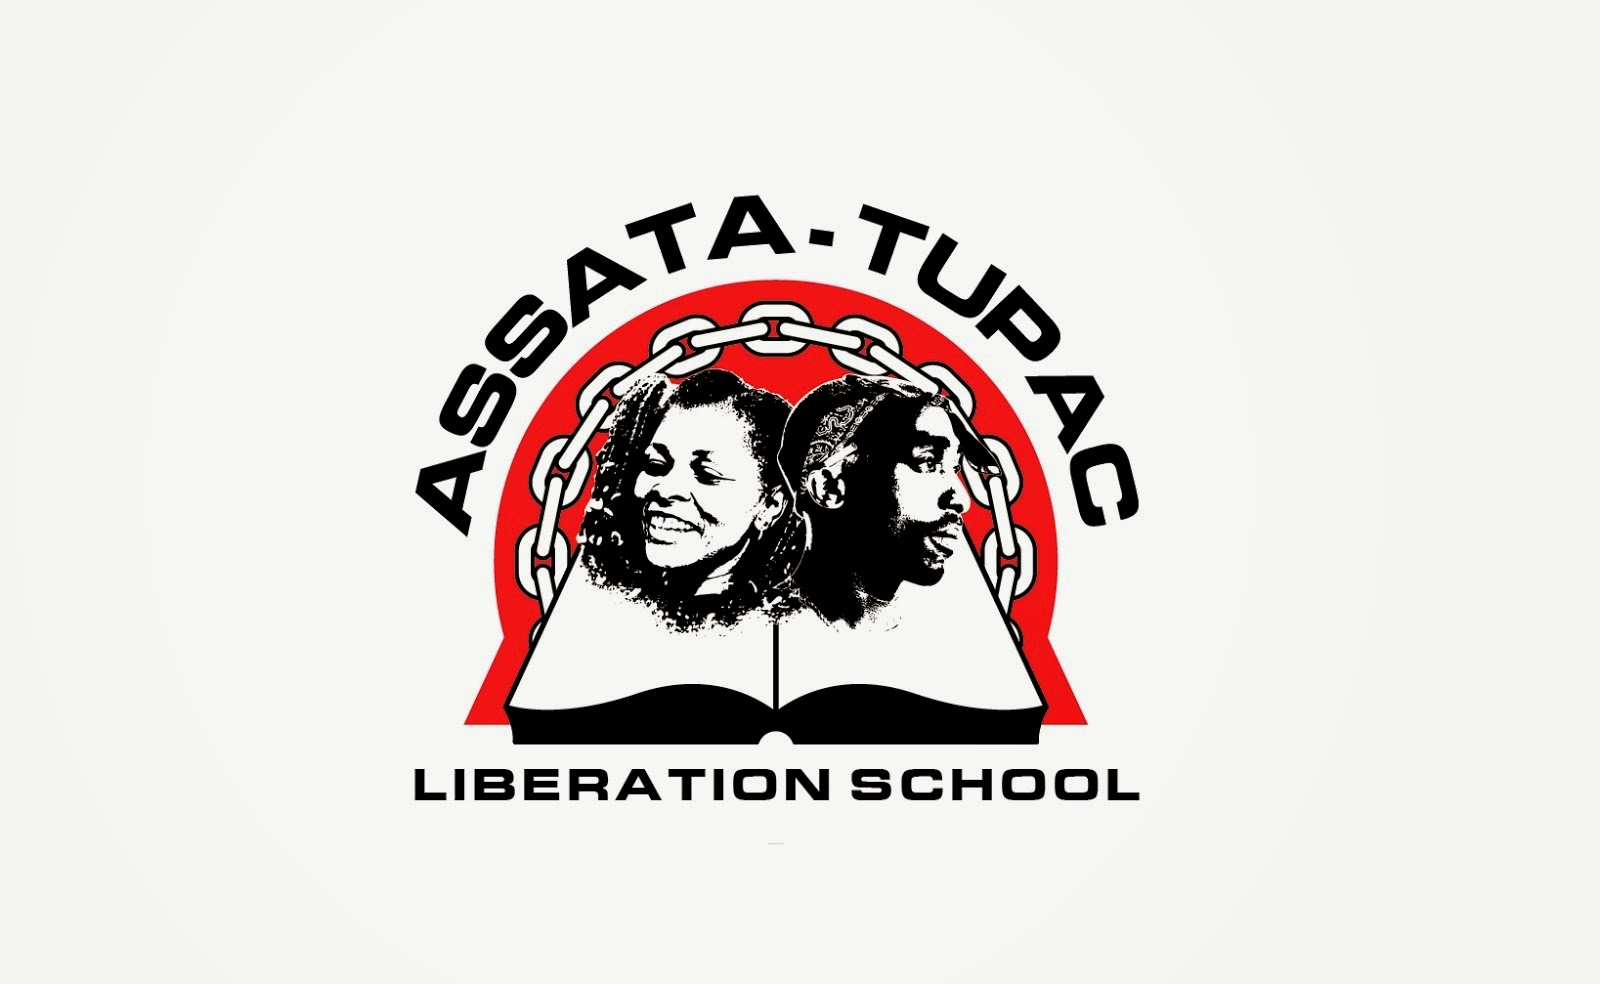 ASSATA-TUPAC LIBERATION SCHOOL